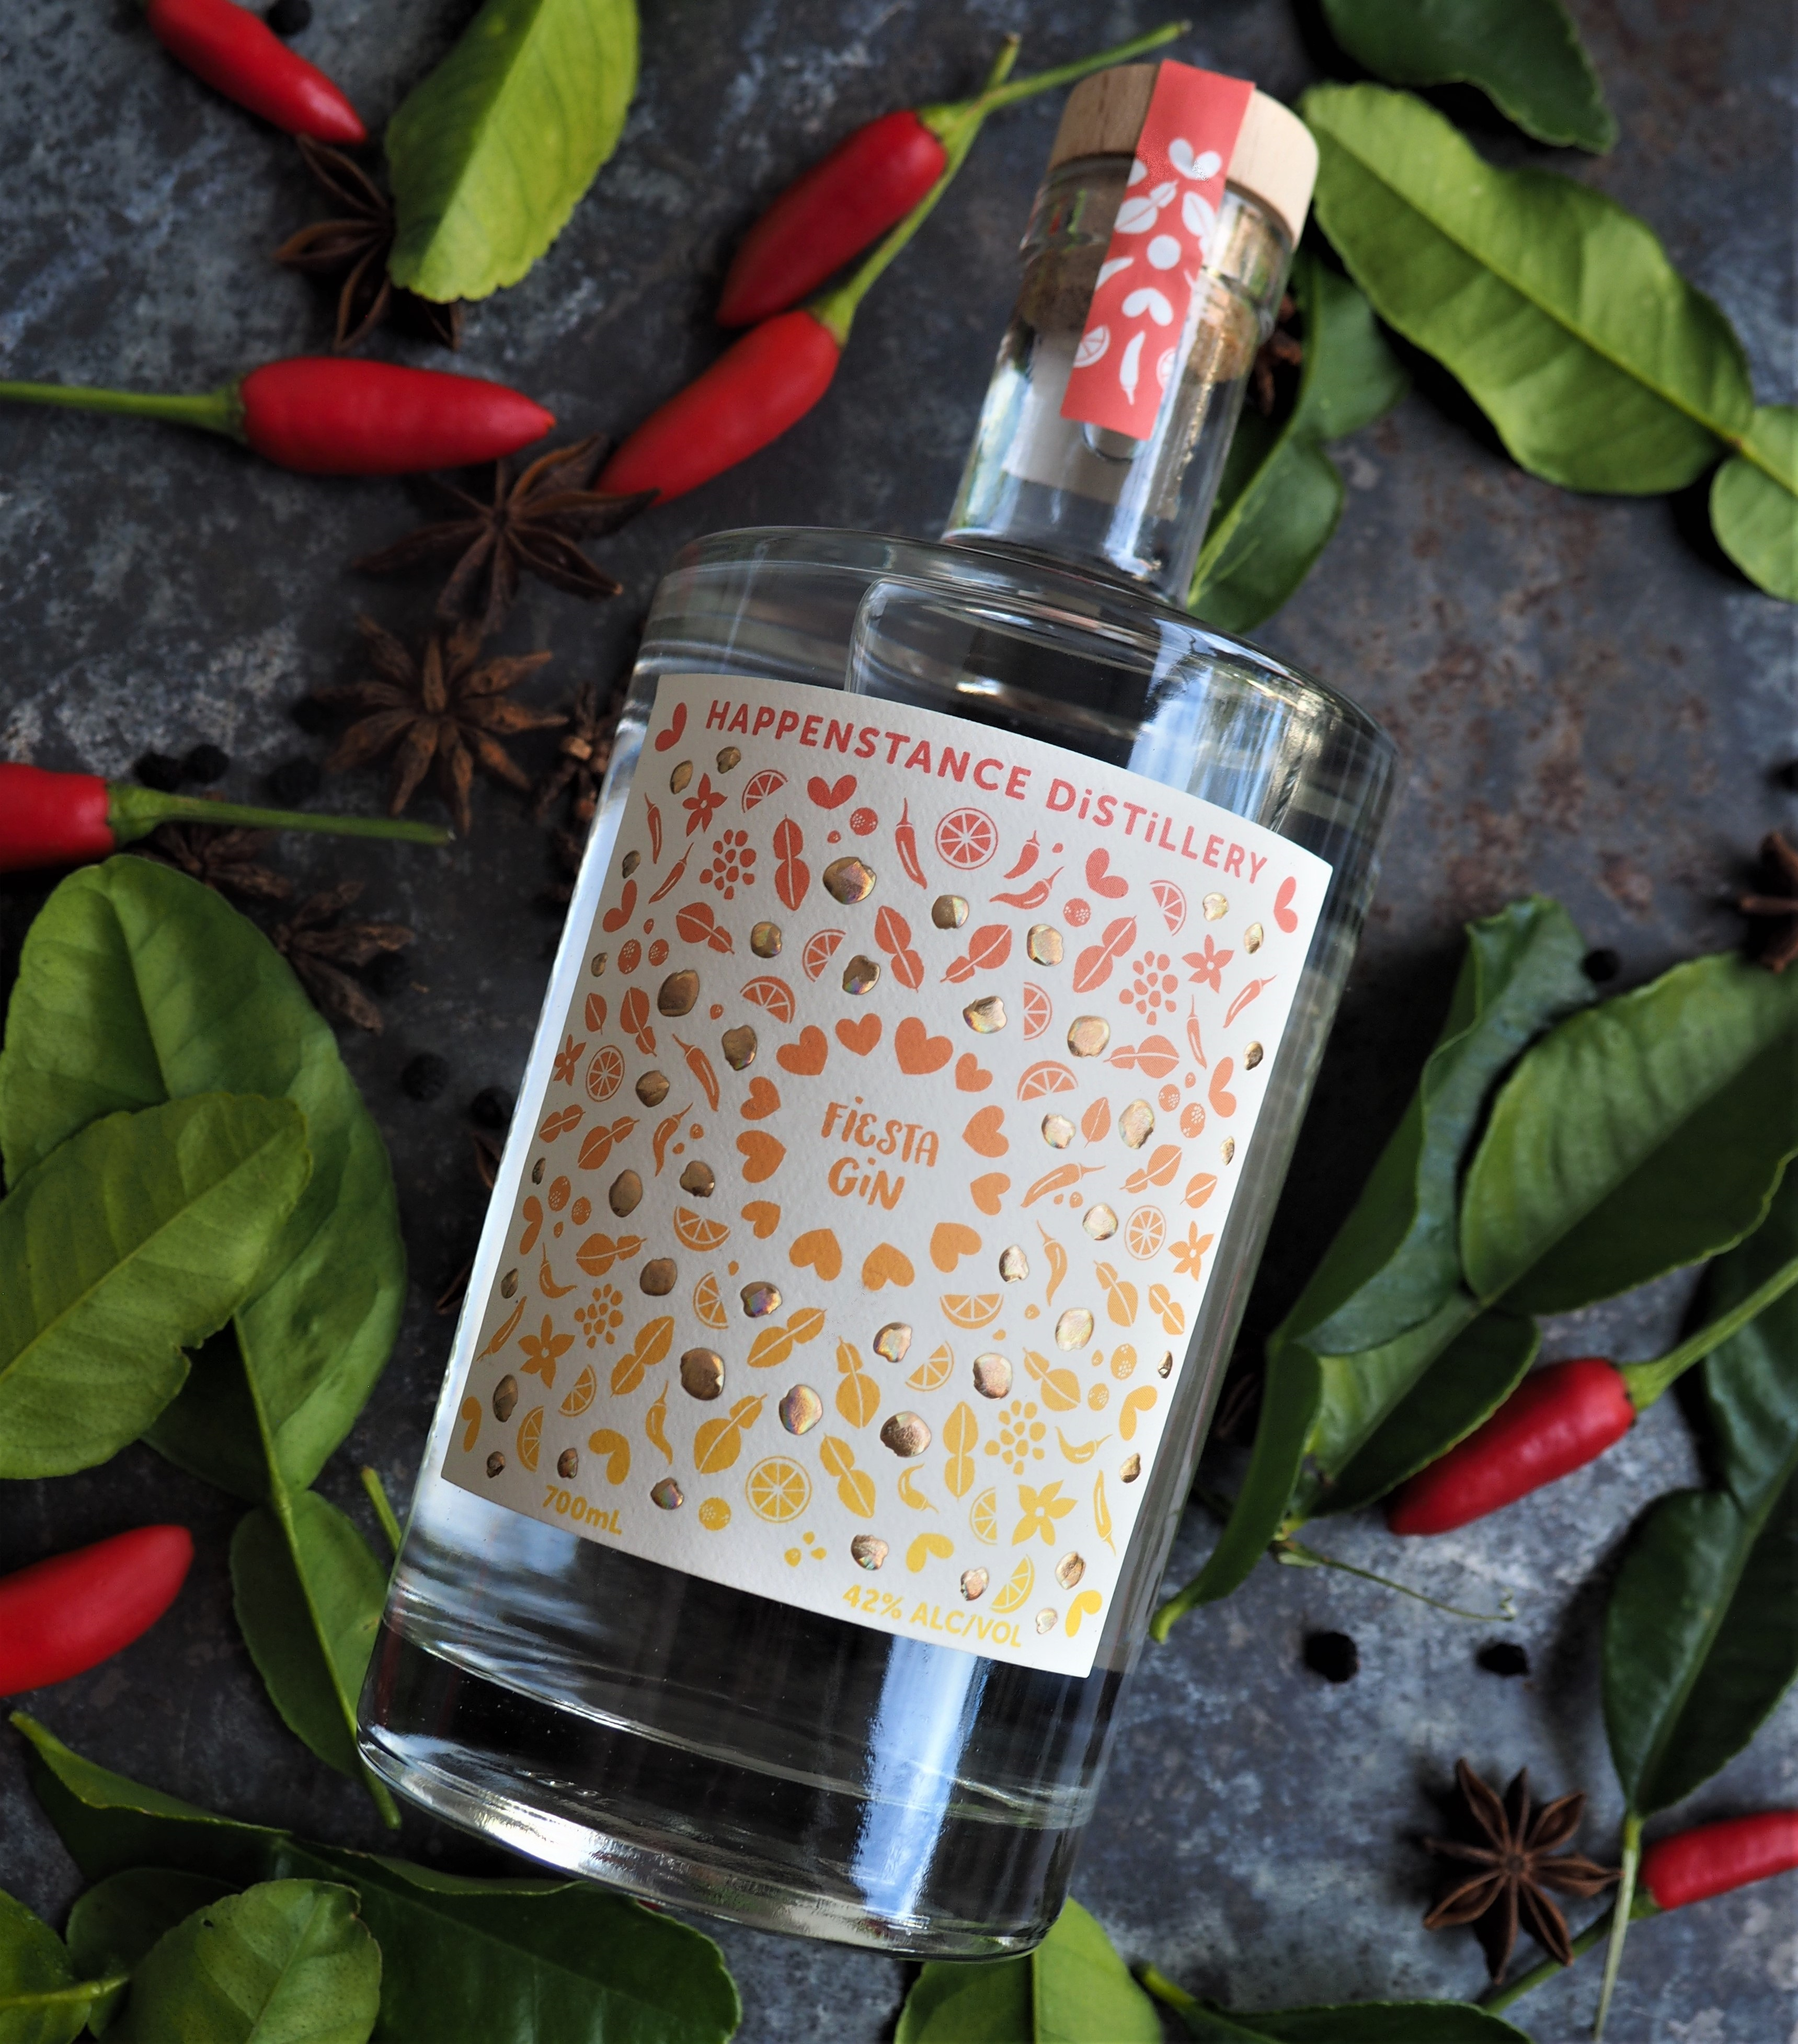 Fiesta Time! - New Happenstance gin has arrived at Options